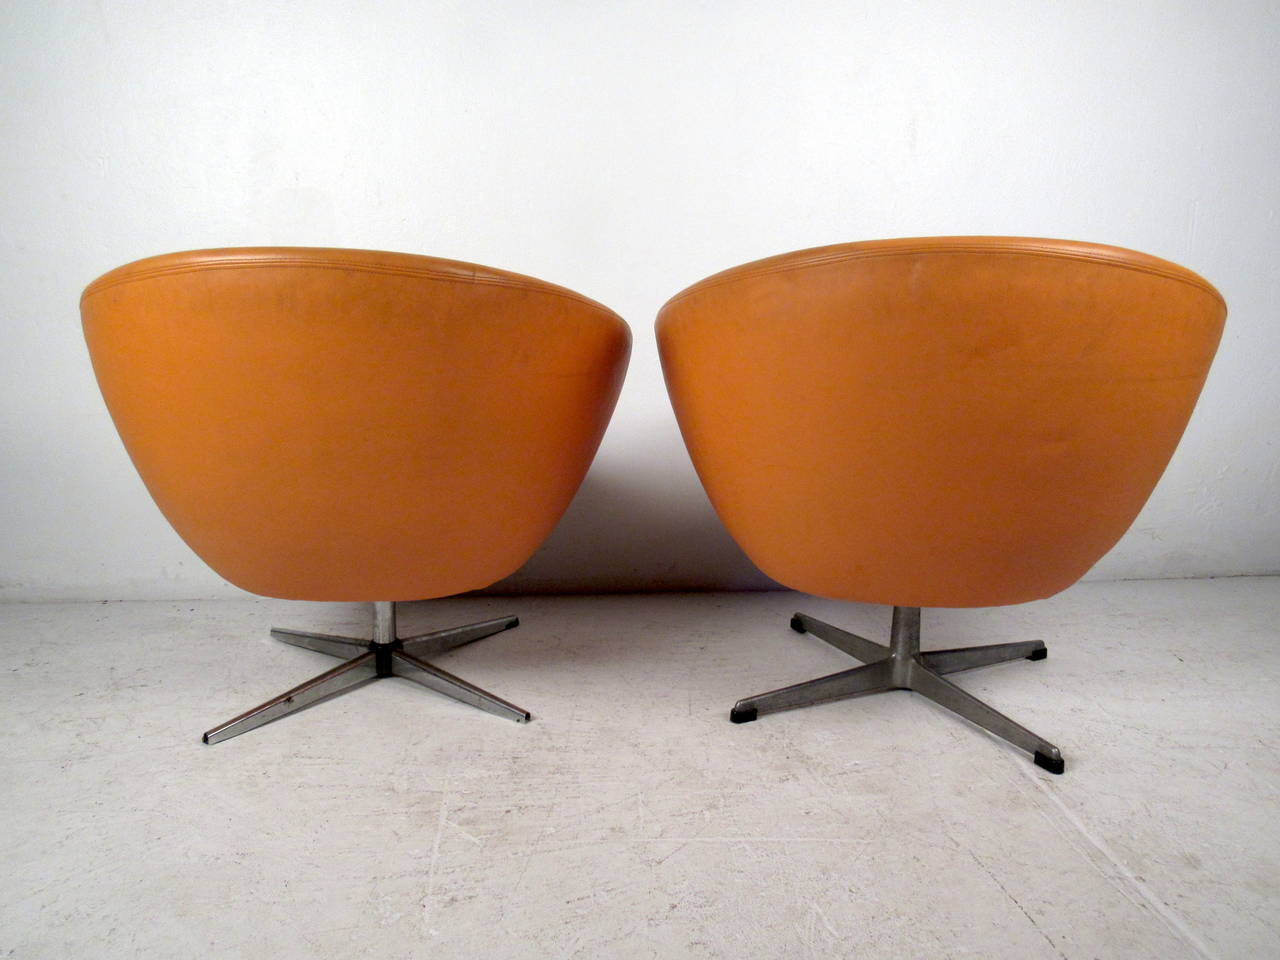 Pair Of Mid Century Modern Overman Orange Lounge Chairs In Good Condition  For Sale In